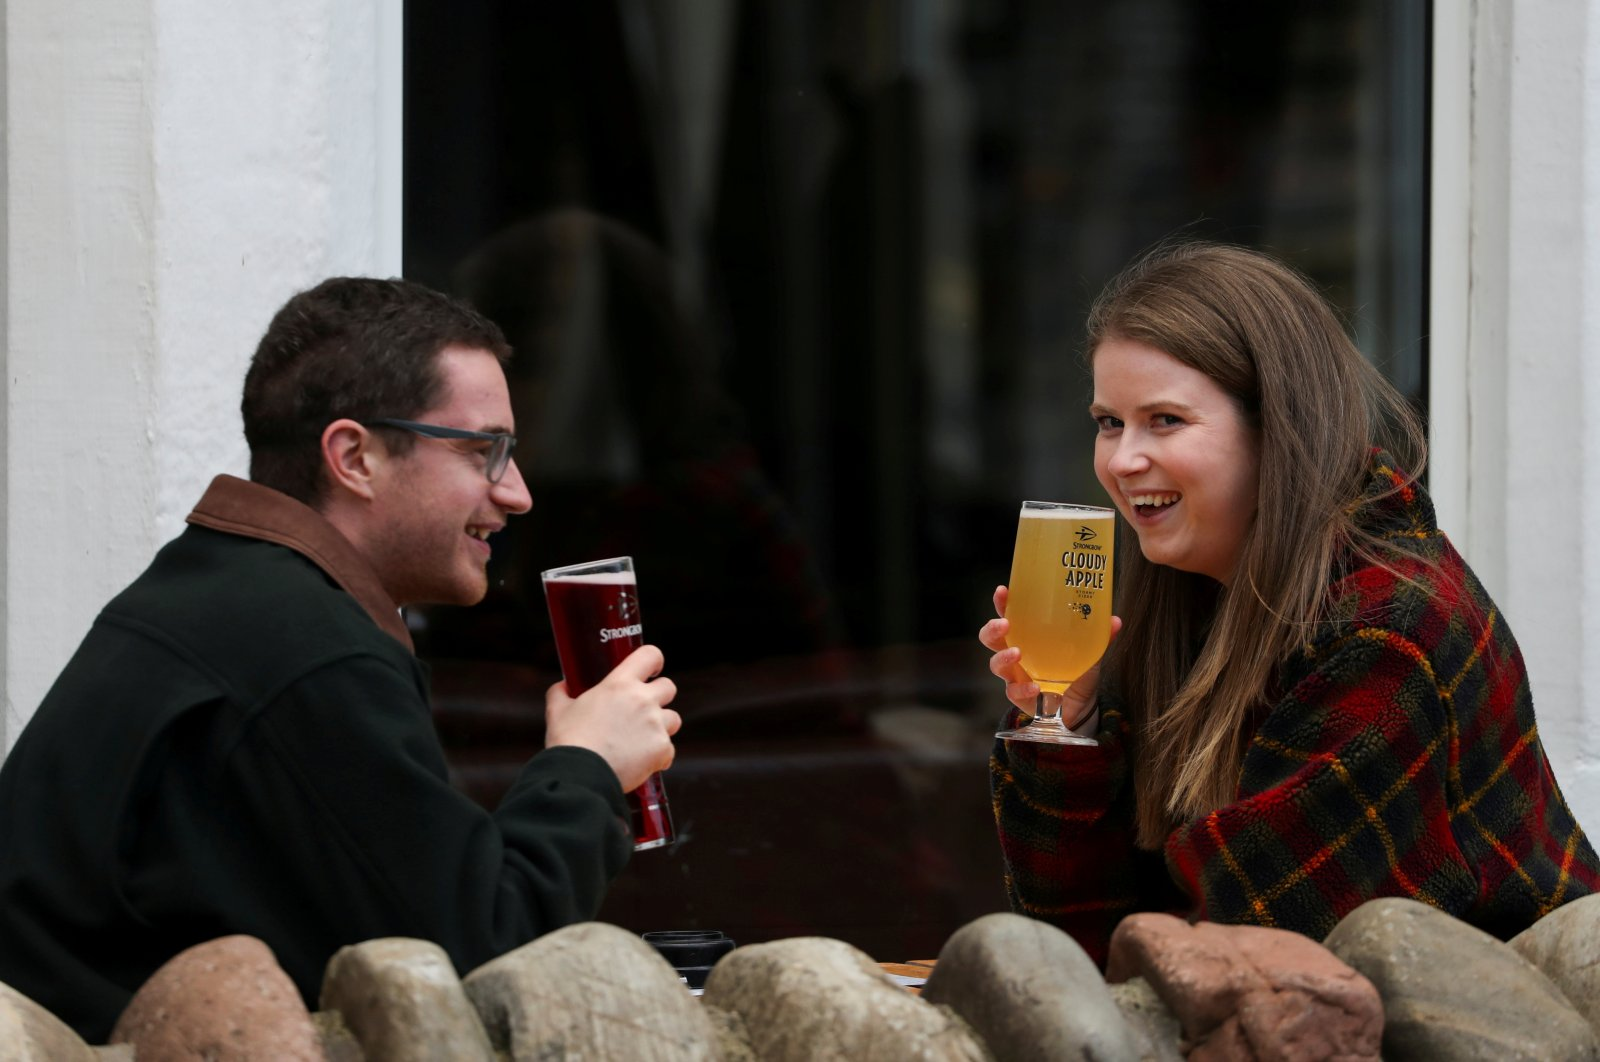 People drink outdoors in Pitlochry after Scottish First Minister Nicola Sturgeon announced new circuit breaker restrictions to counter the coronavirus pandemic, in Scotland, Oct. 7, 2020. (REUTERS Photo)